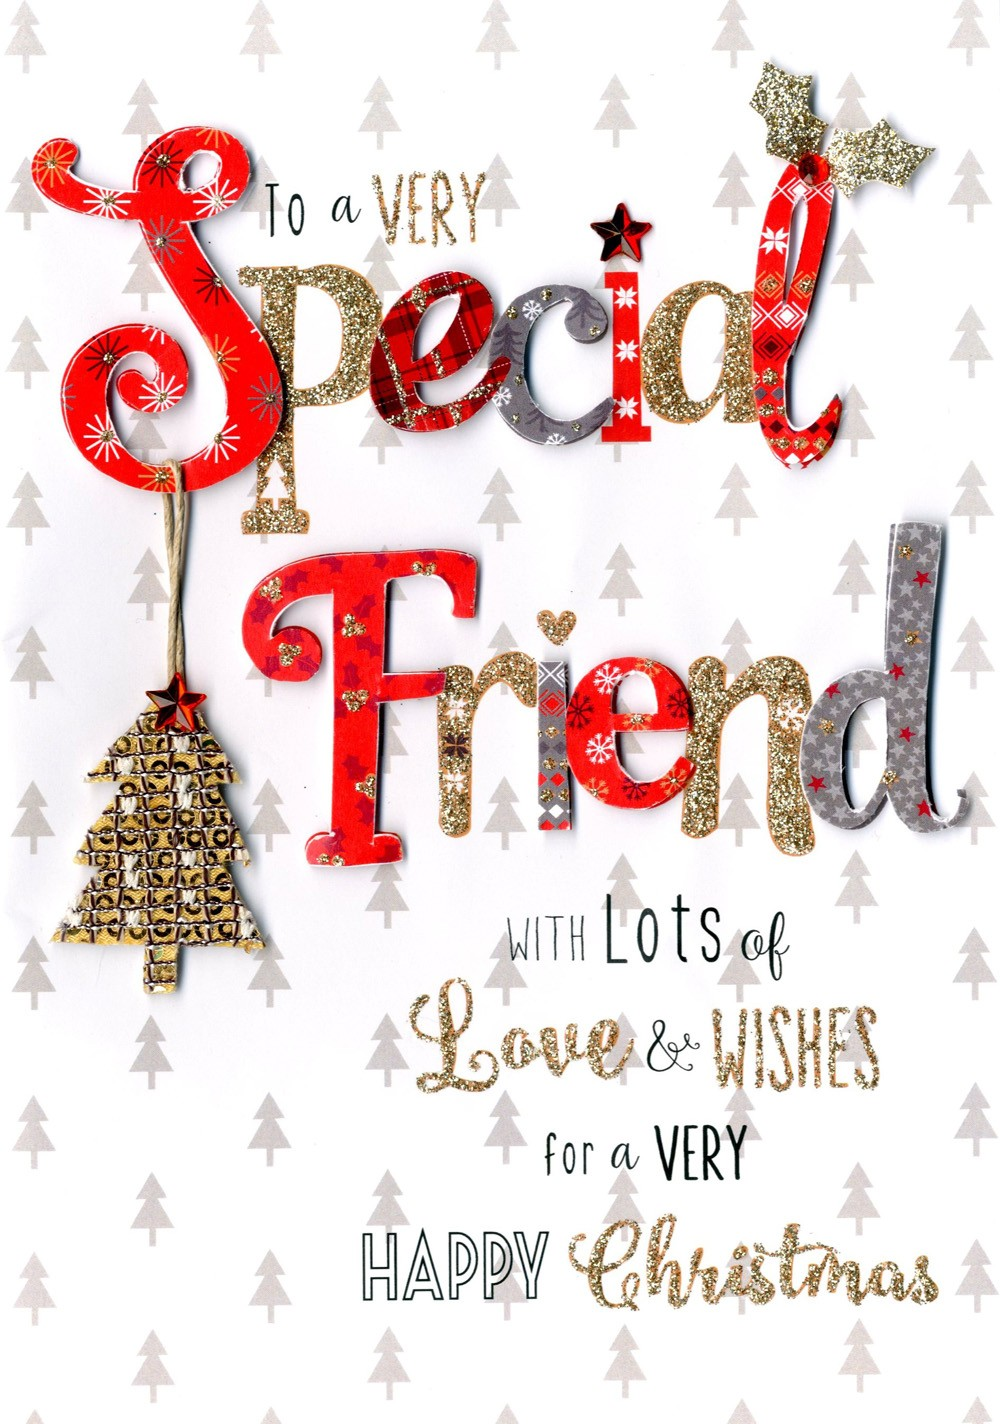 Christmas-Greetings-for-a-Friend